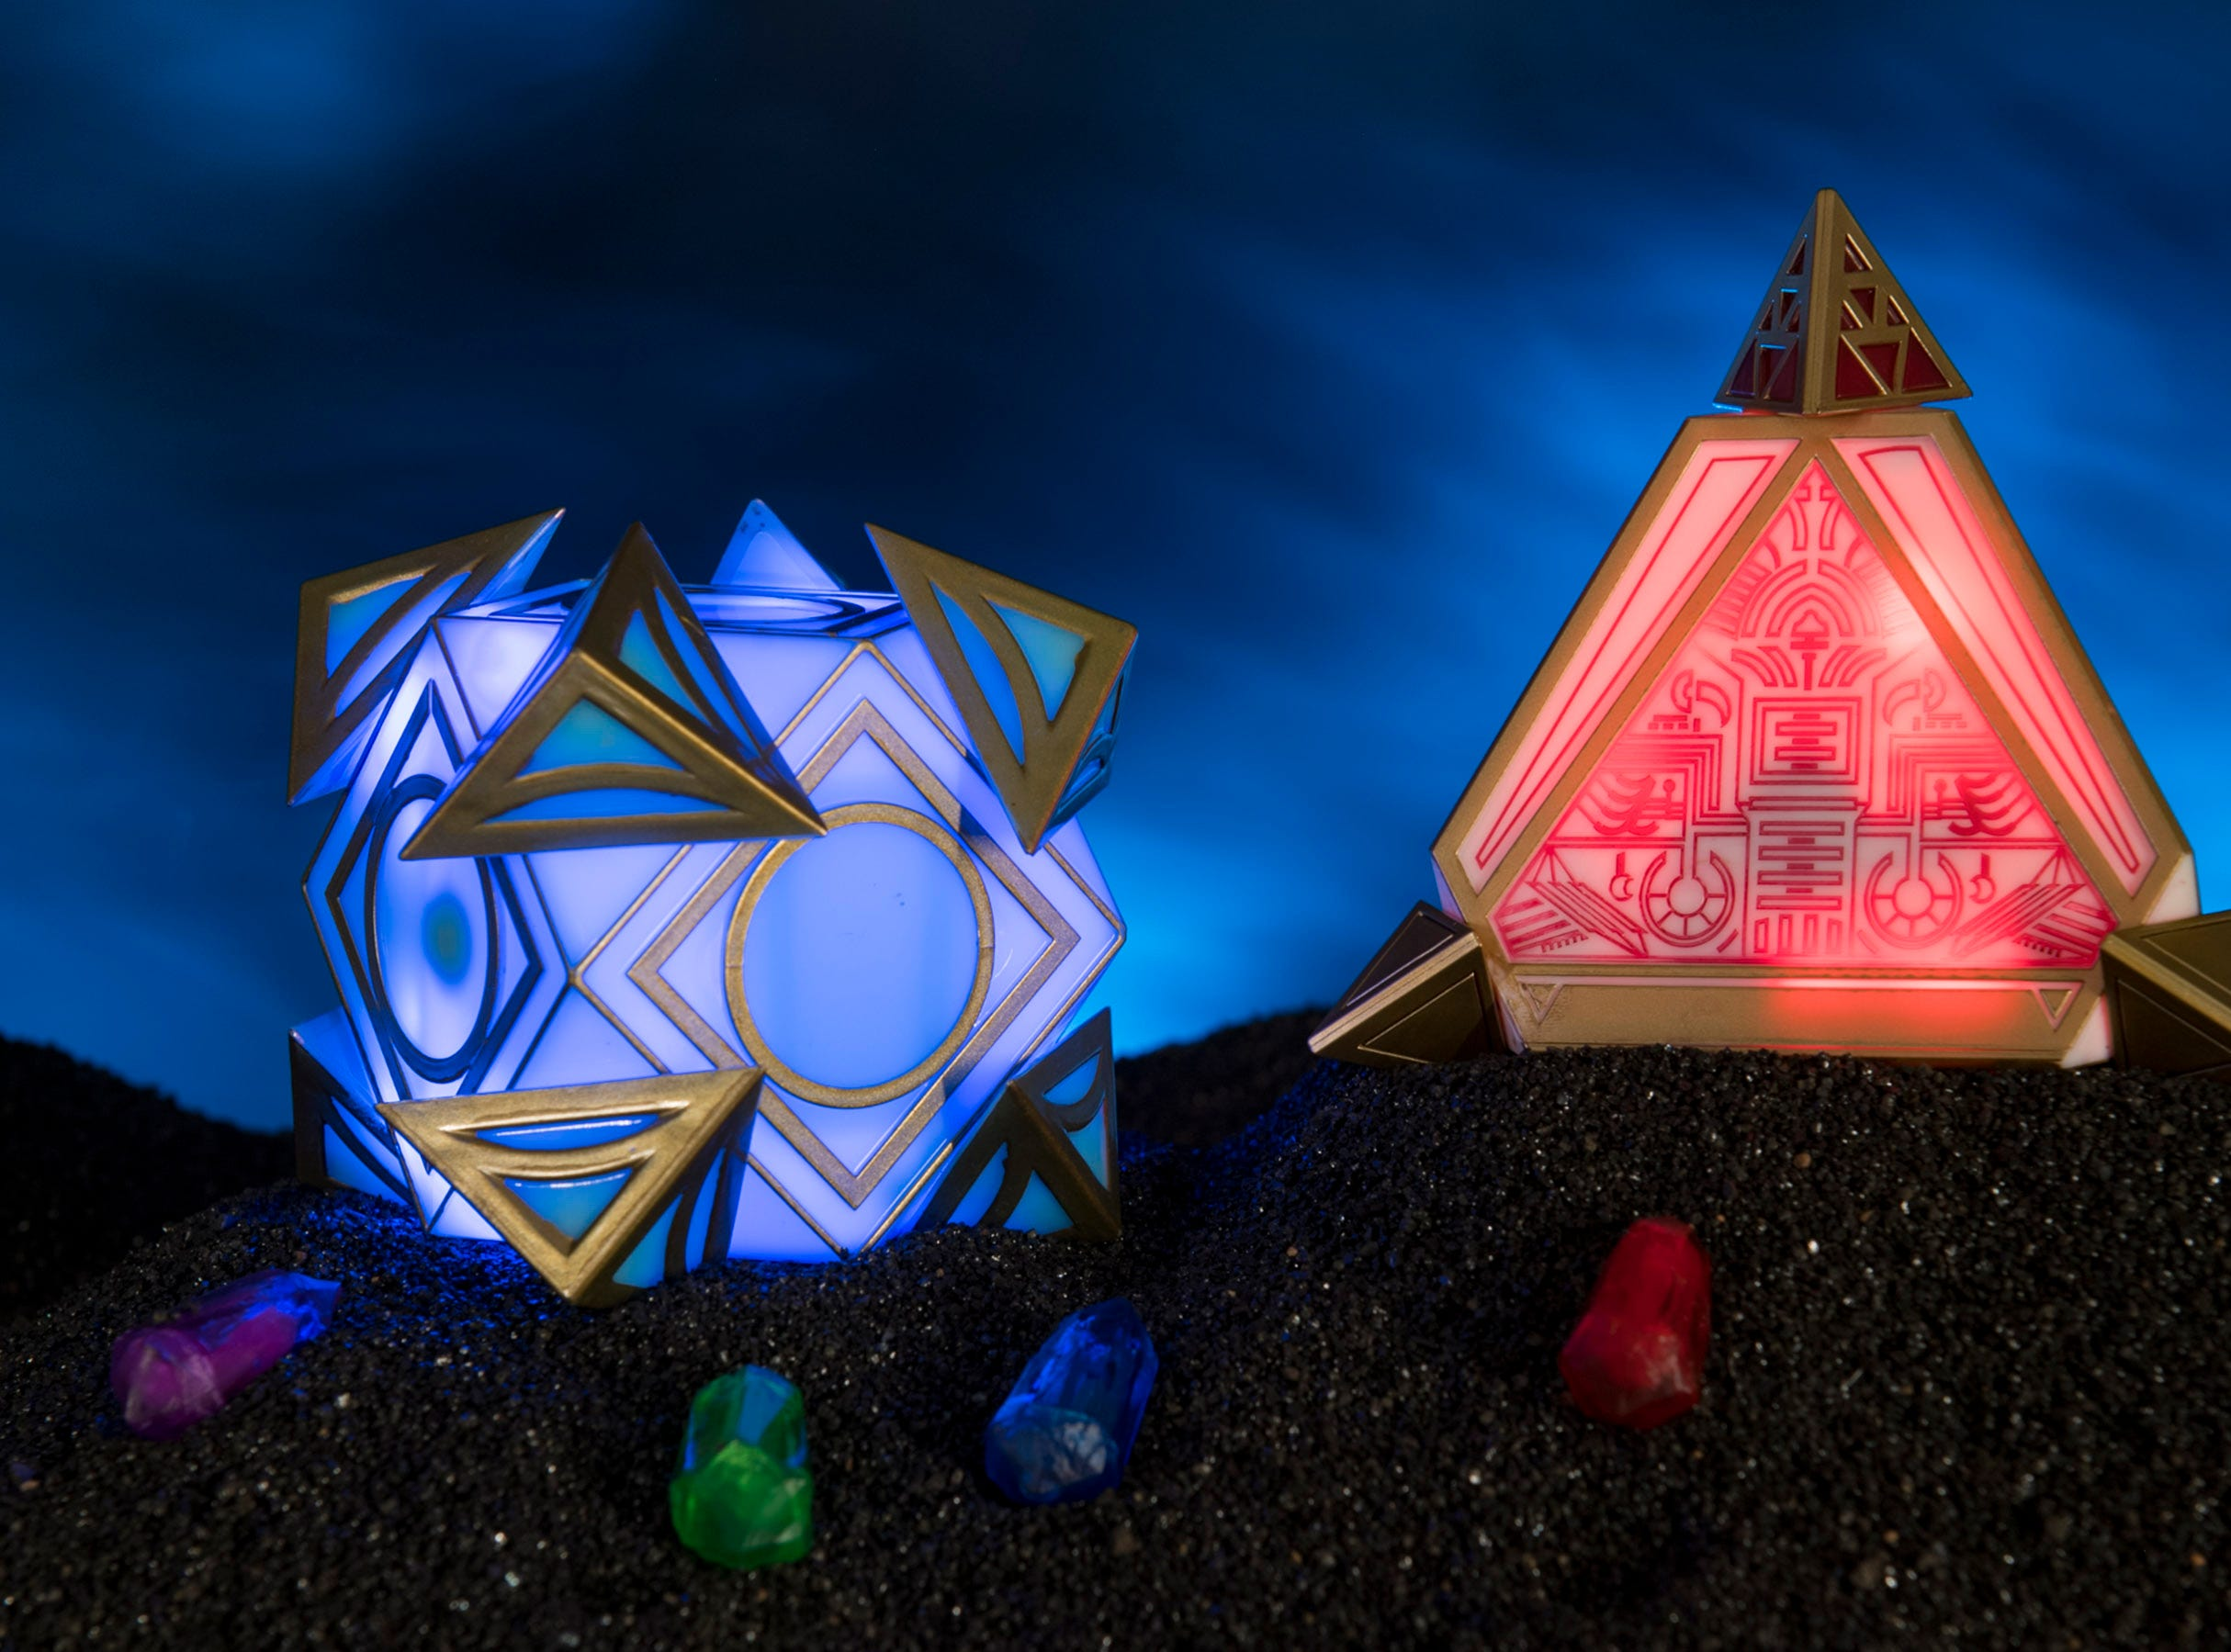 There are many rare and unique items to be discovered at Dok-Ondar's Den of Antiquities inside Star Wars: Galaxy's Edge.  Holocrons, pictured here, are ancient repositories of wisdom. Jedi and Sith used them to record their teachings for future generations seeking to understand the mysteries of the Force. Kyber crystals can unlock additional content in both the Jedi and Sith Holocrons.